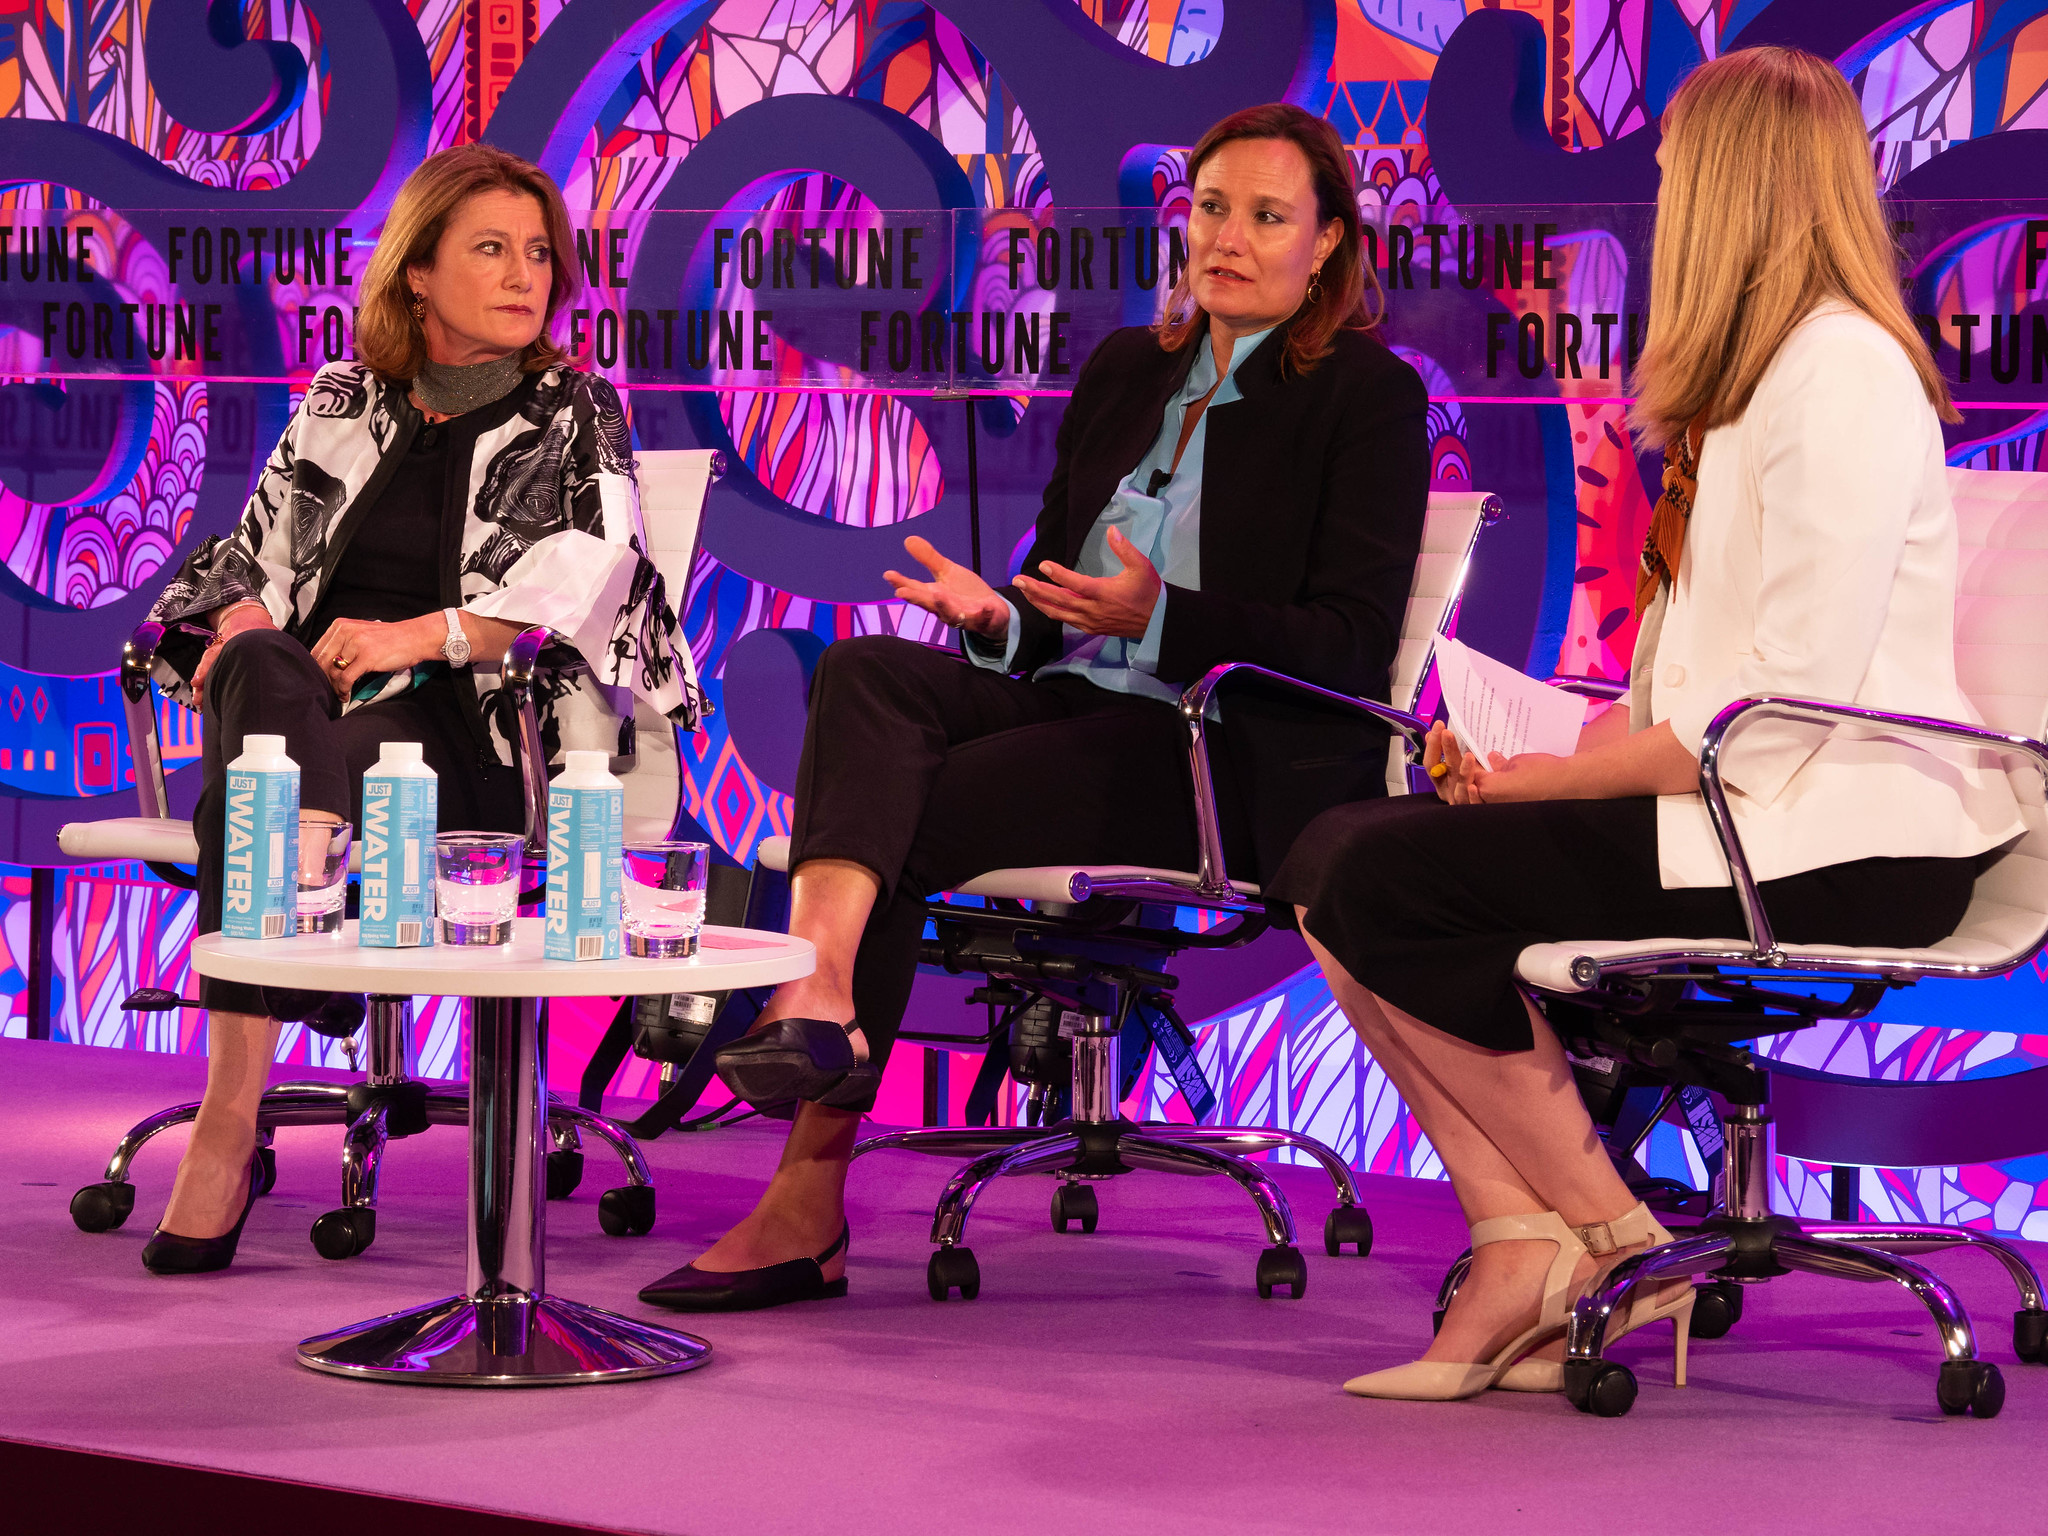 Booking.com president and CEO Gillian Tans and TomTom co-founder Corinne Vigreux discuss problems of artificial intelligence at Fortune's Most Powerful Women International in London